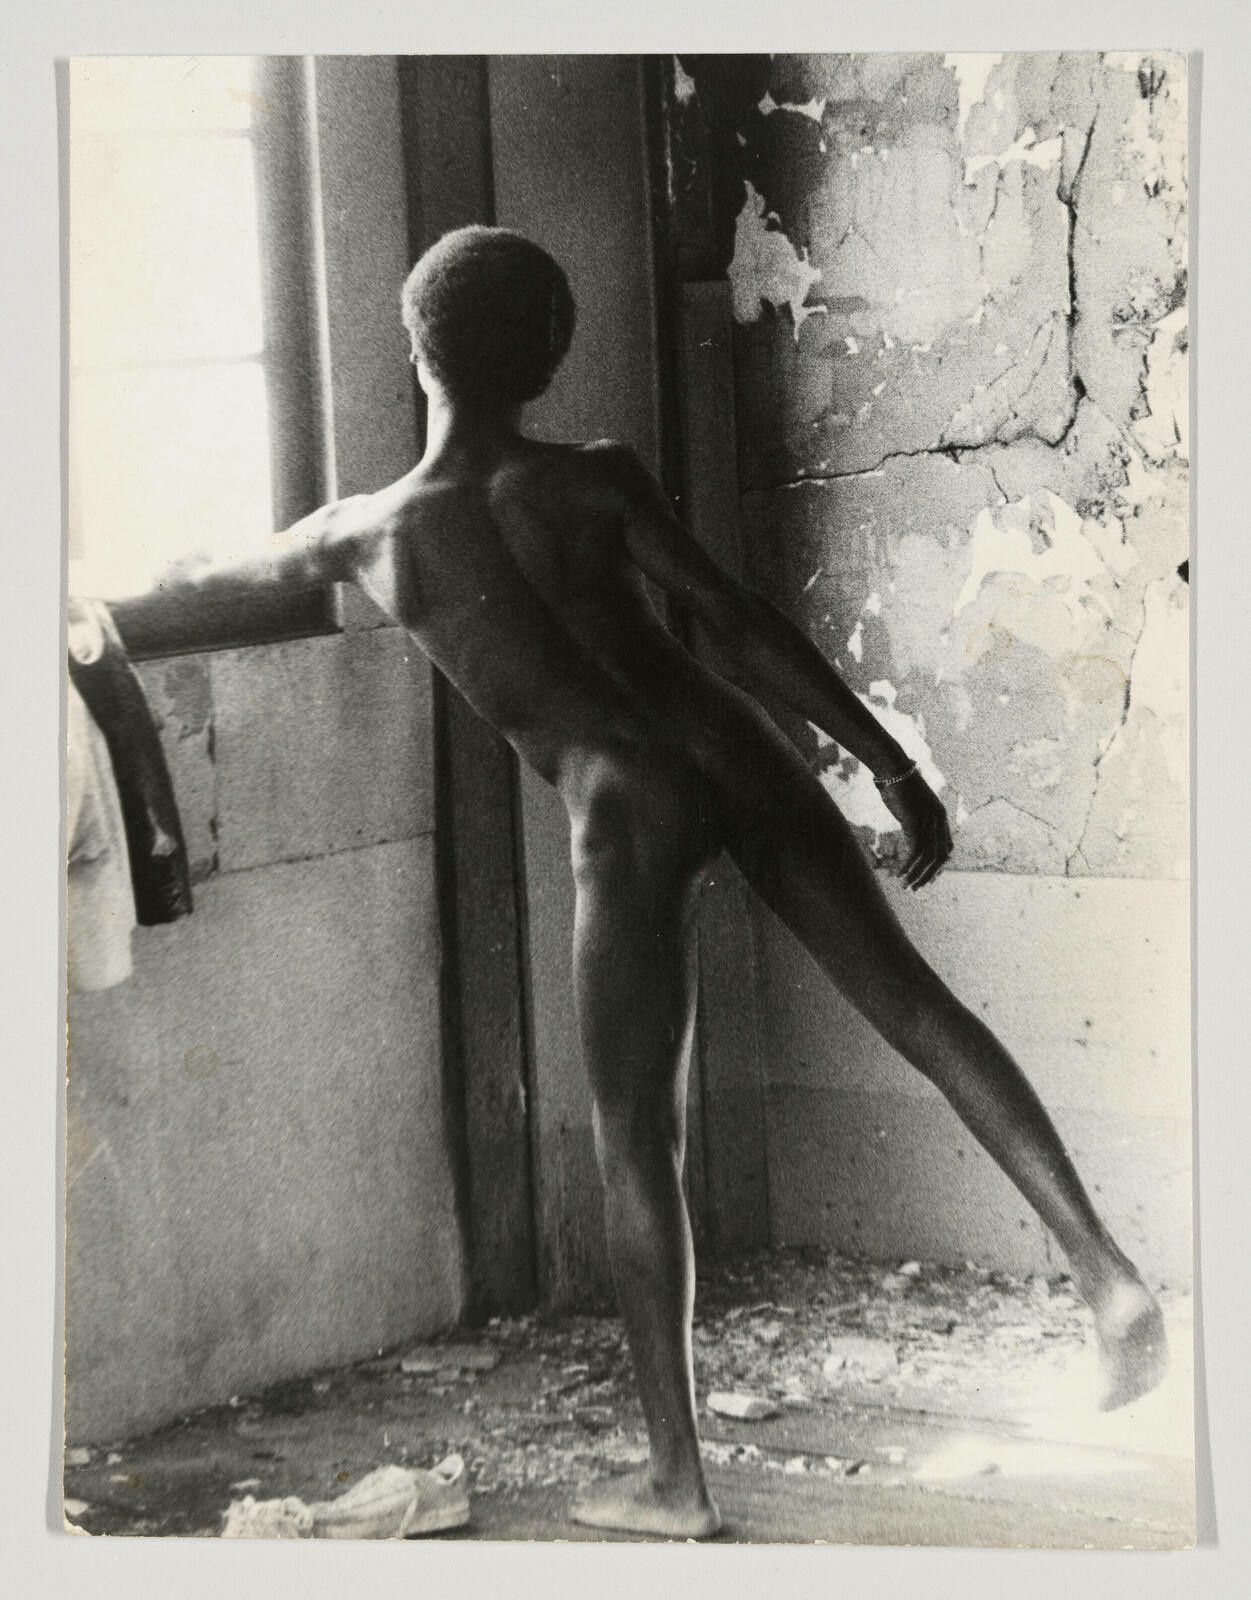 A naked Black man balances on one leg while looking out into the glistening light from a window in a dilapidated room